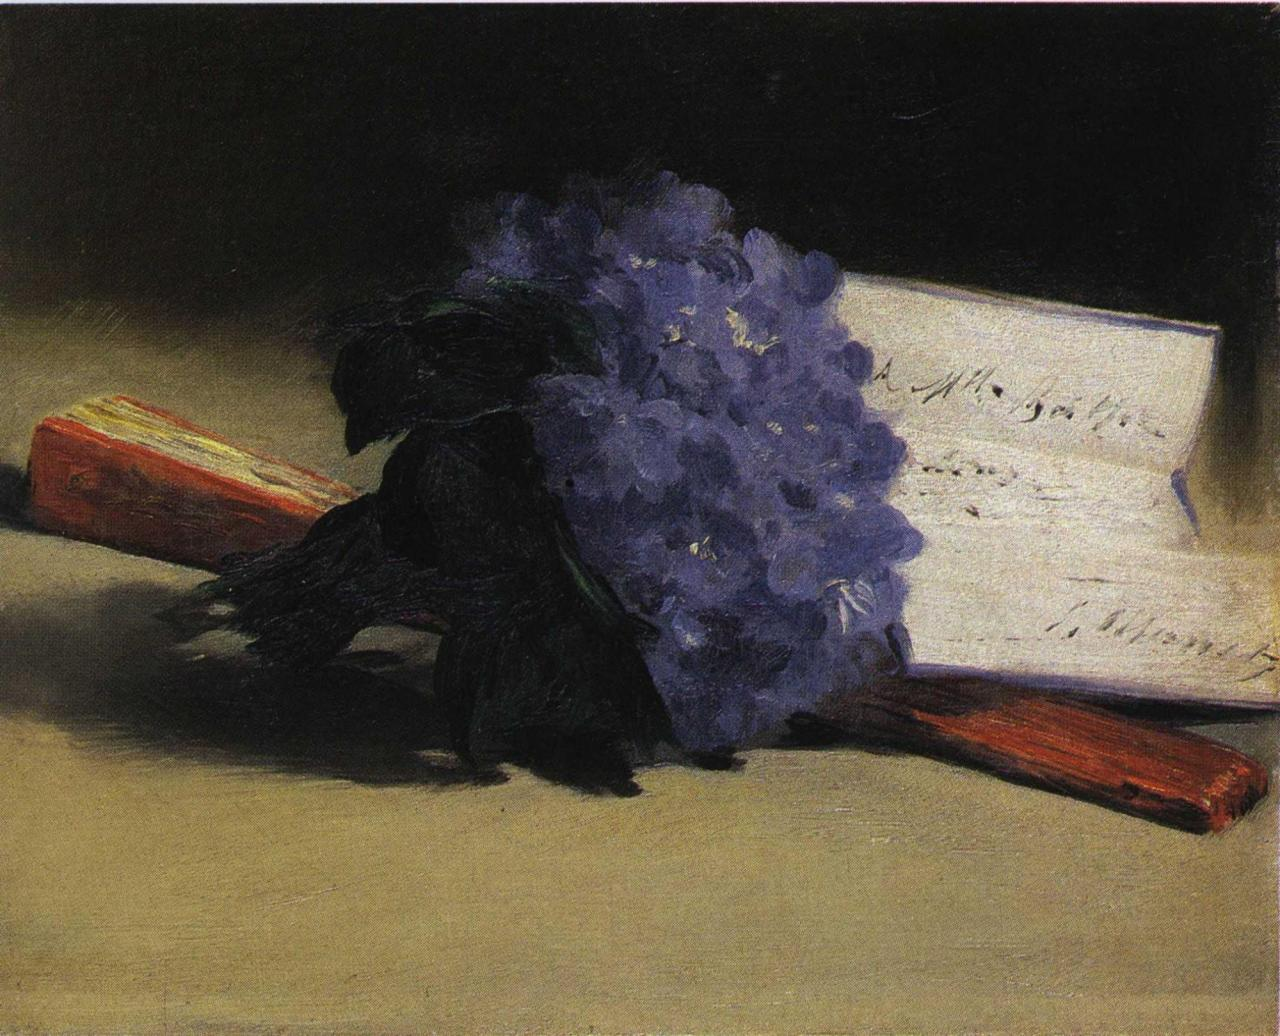 Edouard Manet, Bouquet de Violettes,  1872 as seen on the cover of Baudelaire's Les Fleurs du Mal